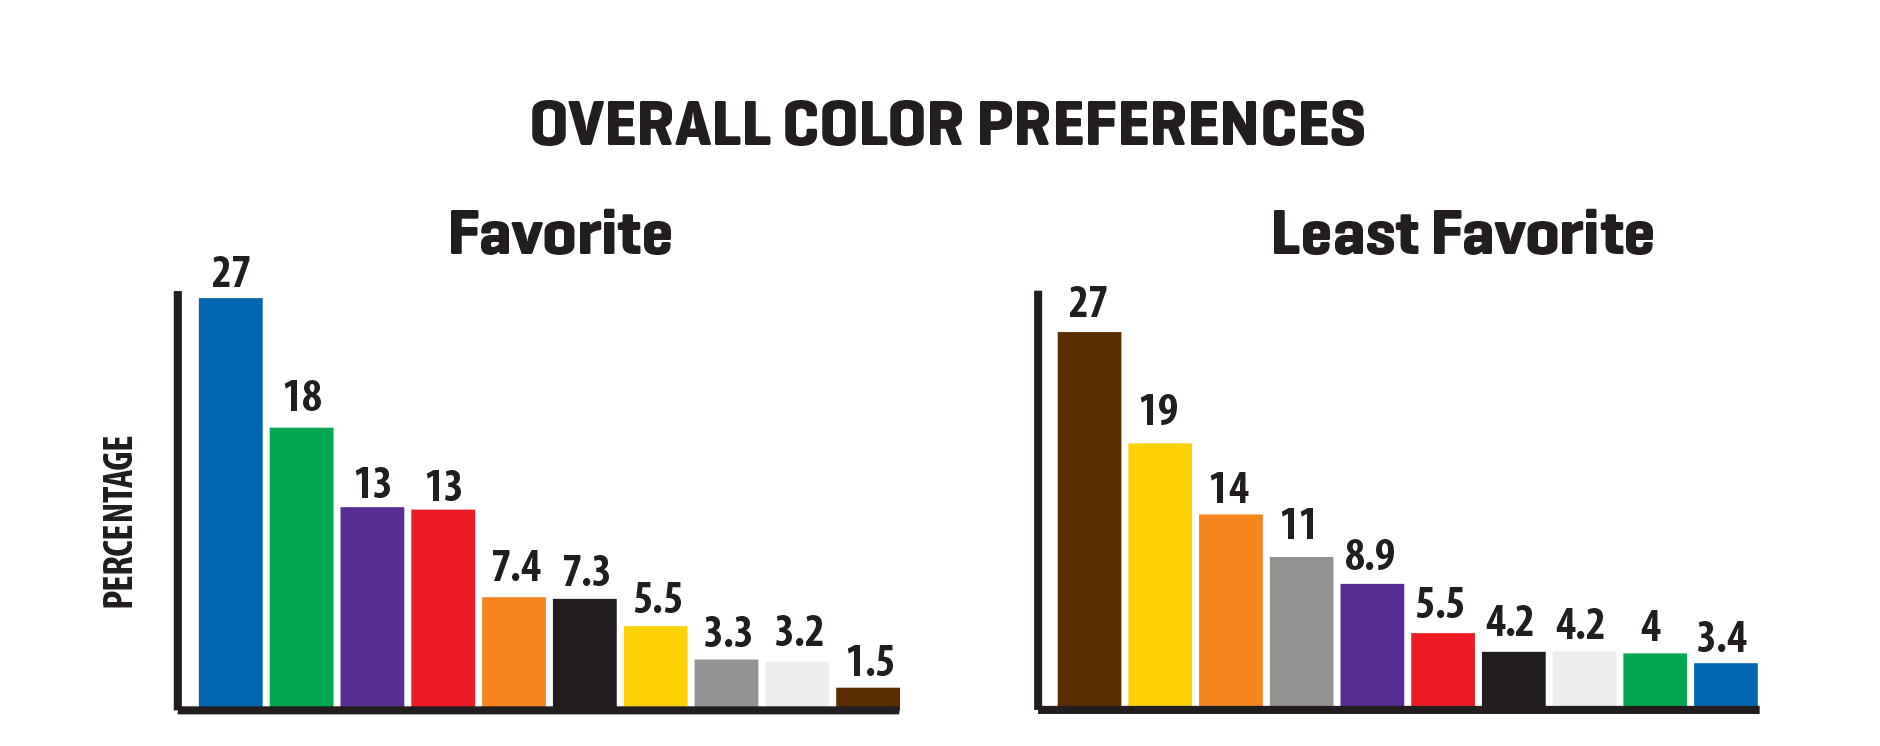 Favorite colors survey results